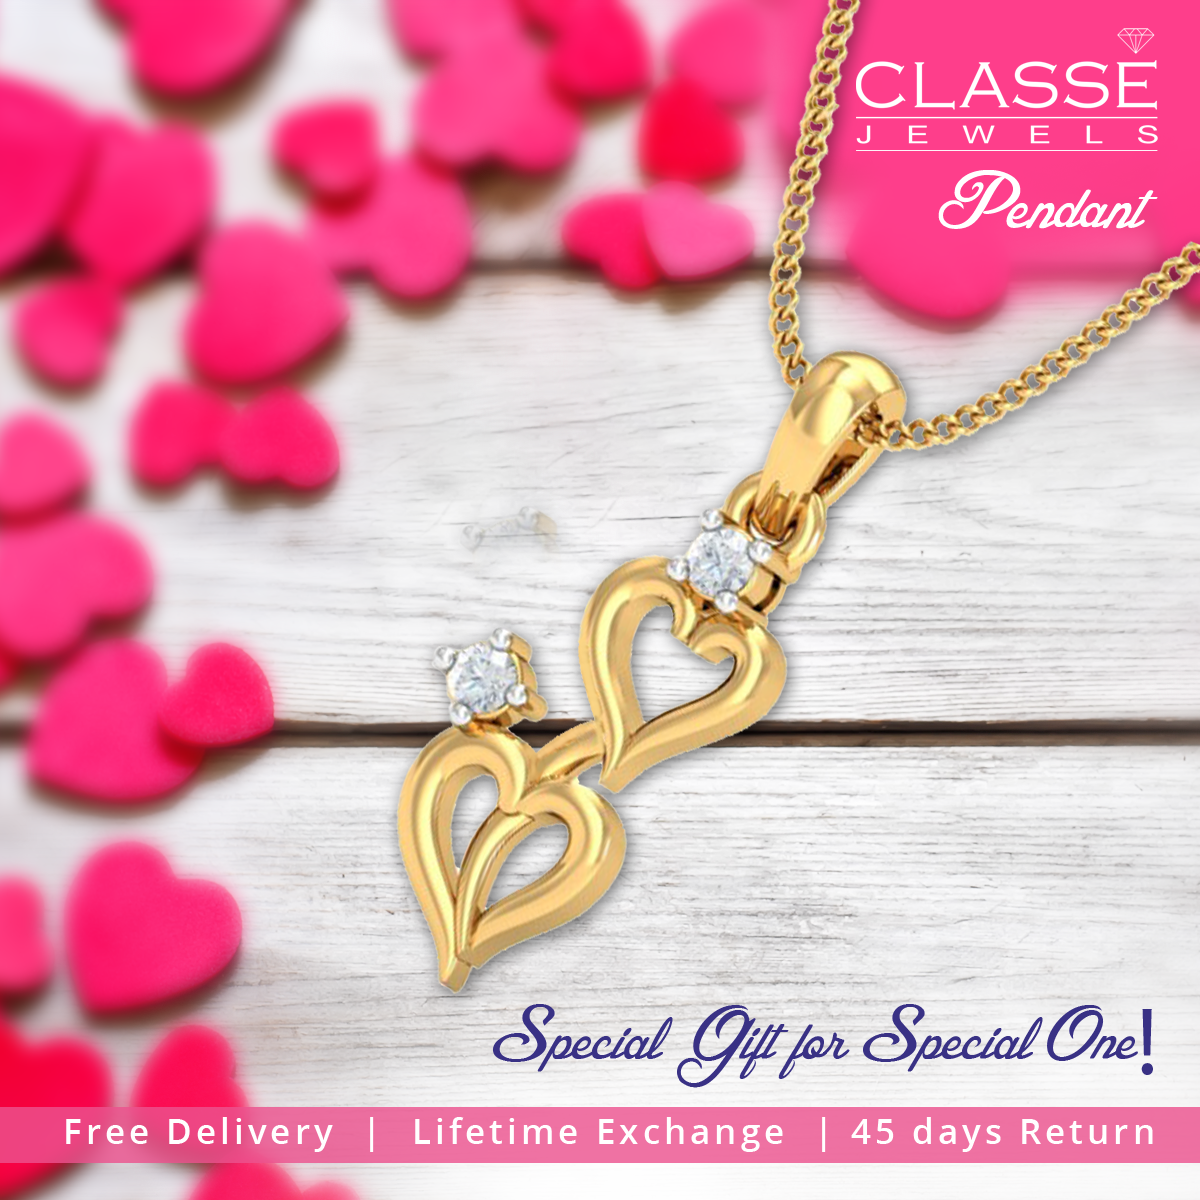 Special gift for special one! Order Pendant Online @ http://bit.ly/2arNW9D 45 days Return   Lifetime Exchange   COD Available #NamasteClasse #Diamond #Pendant #Offers #Sale #Jewellery